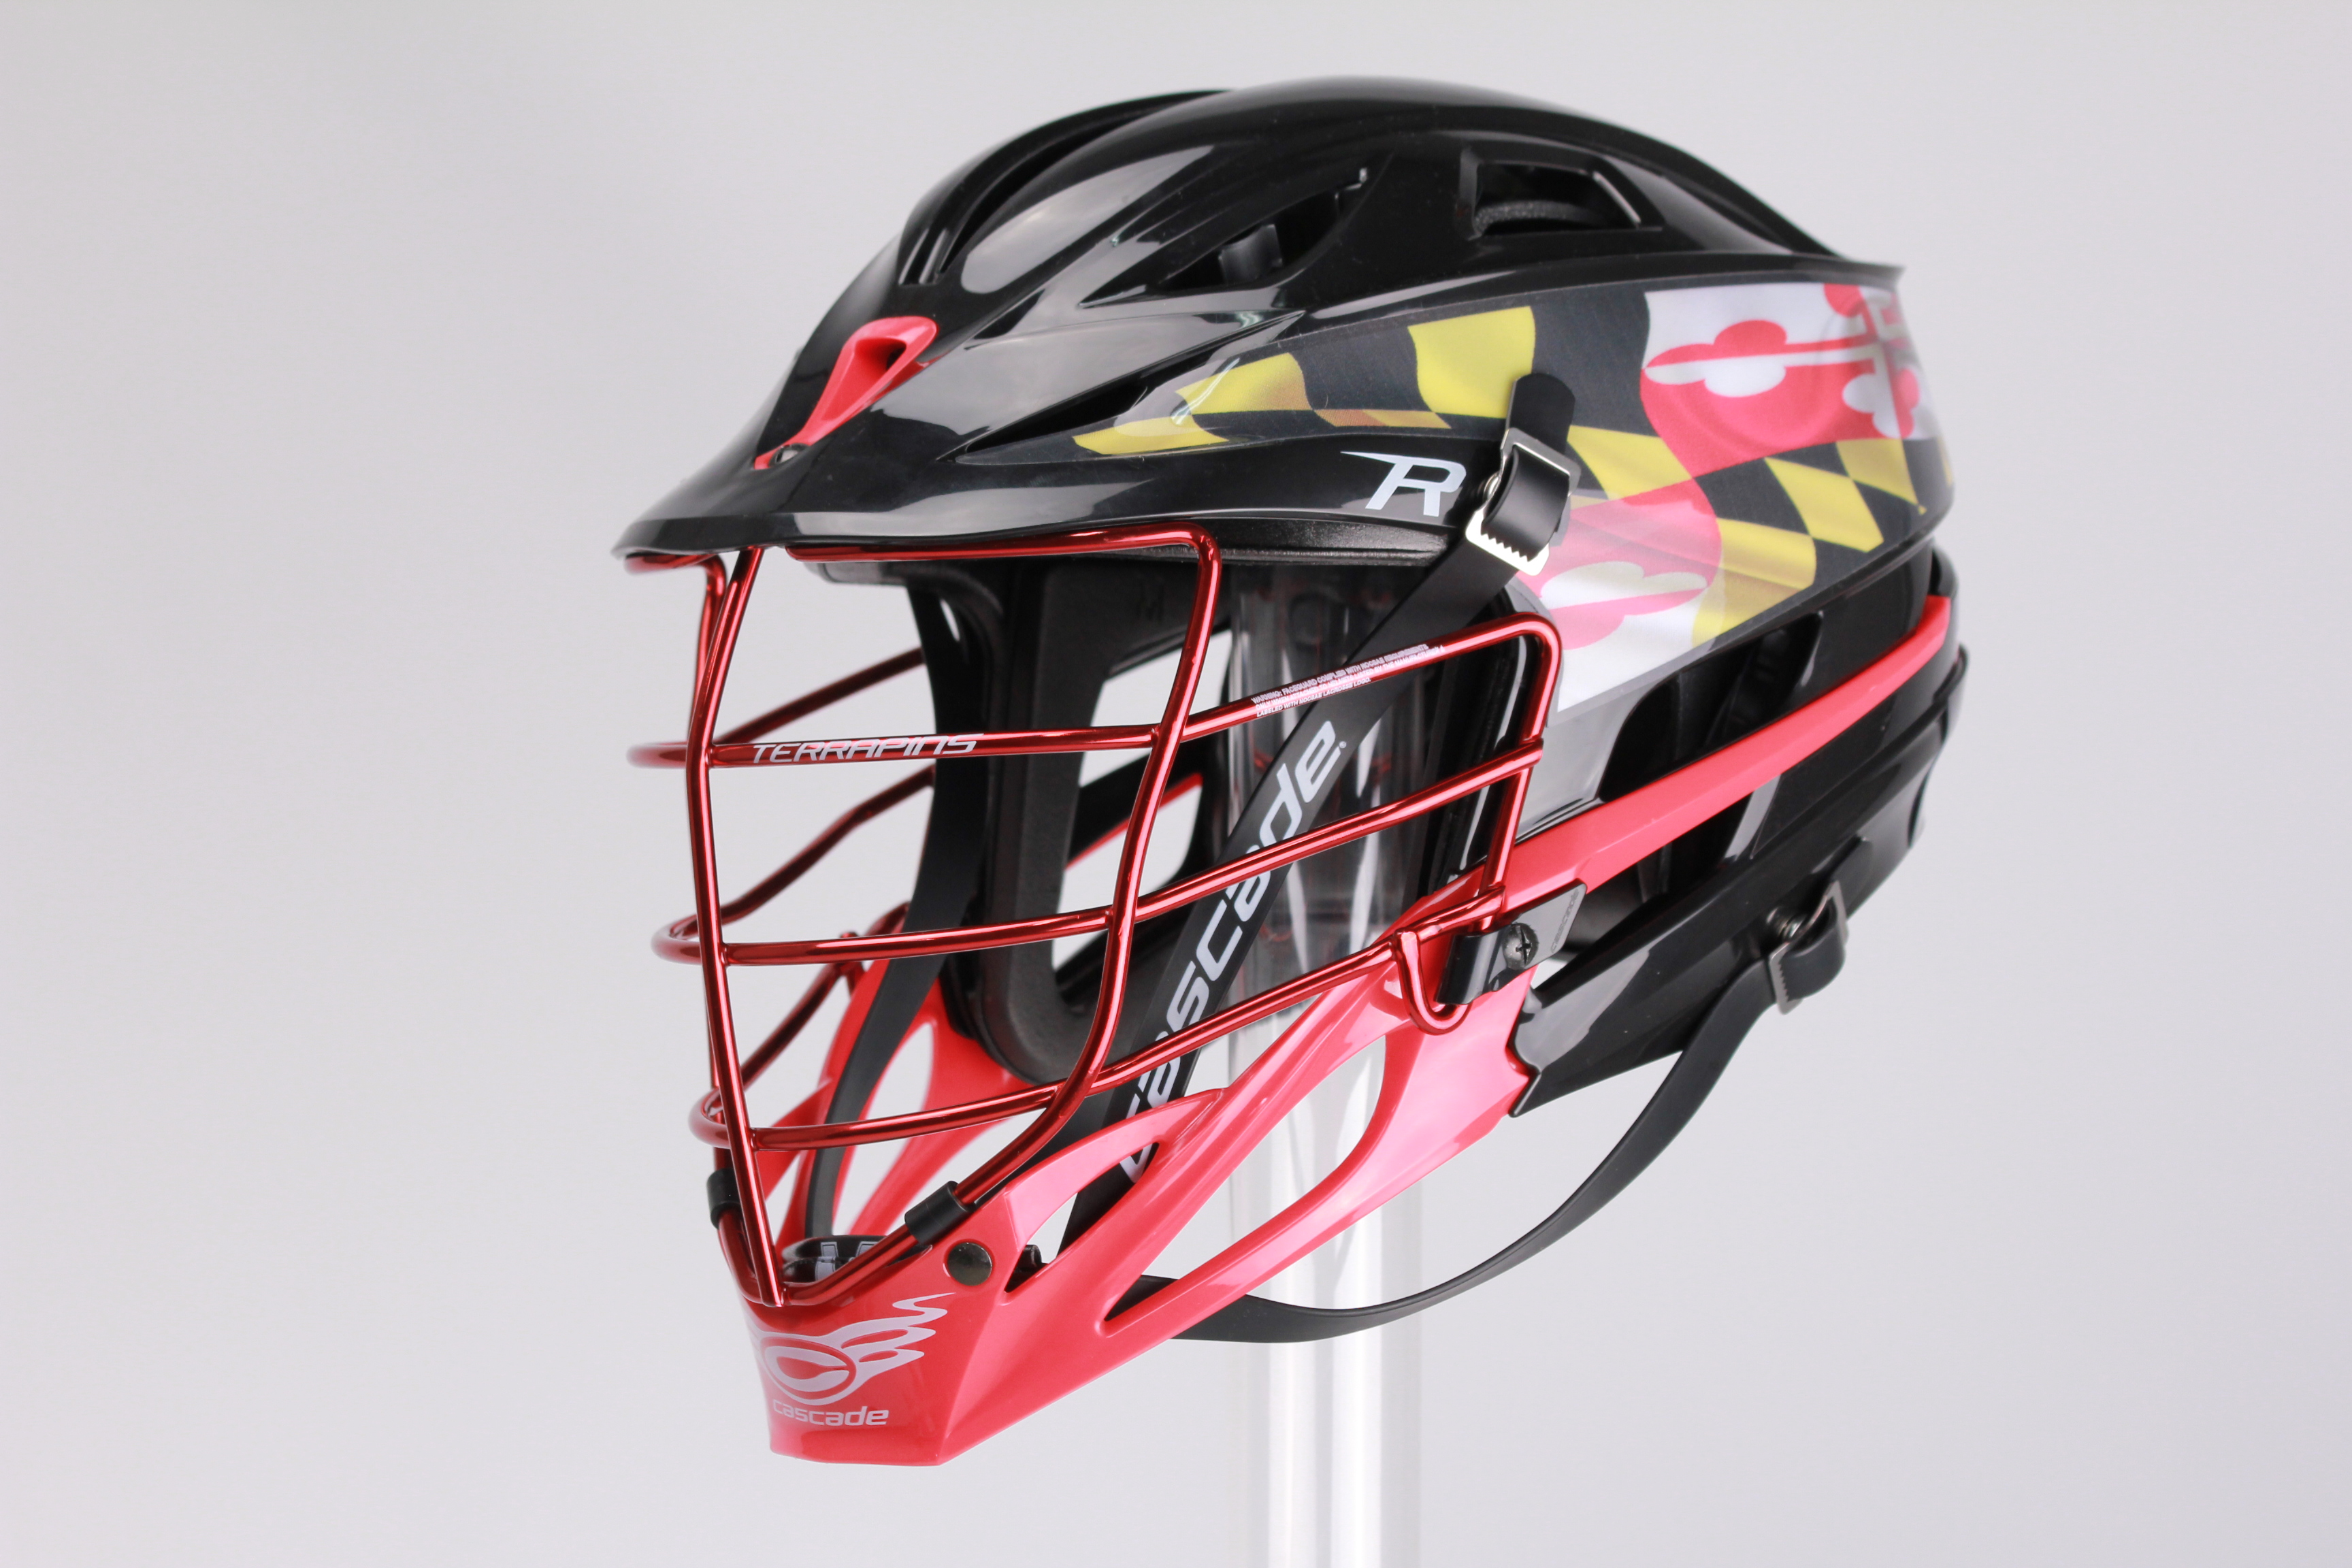 Armour Under Uniforms Lacrosse Maryland